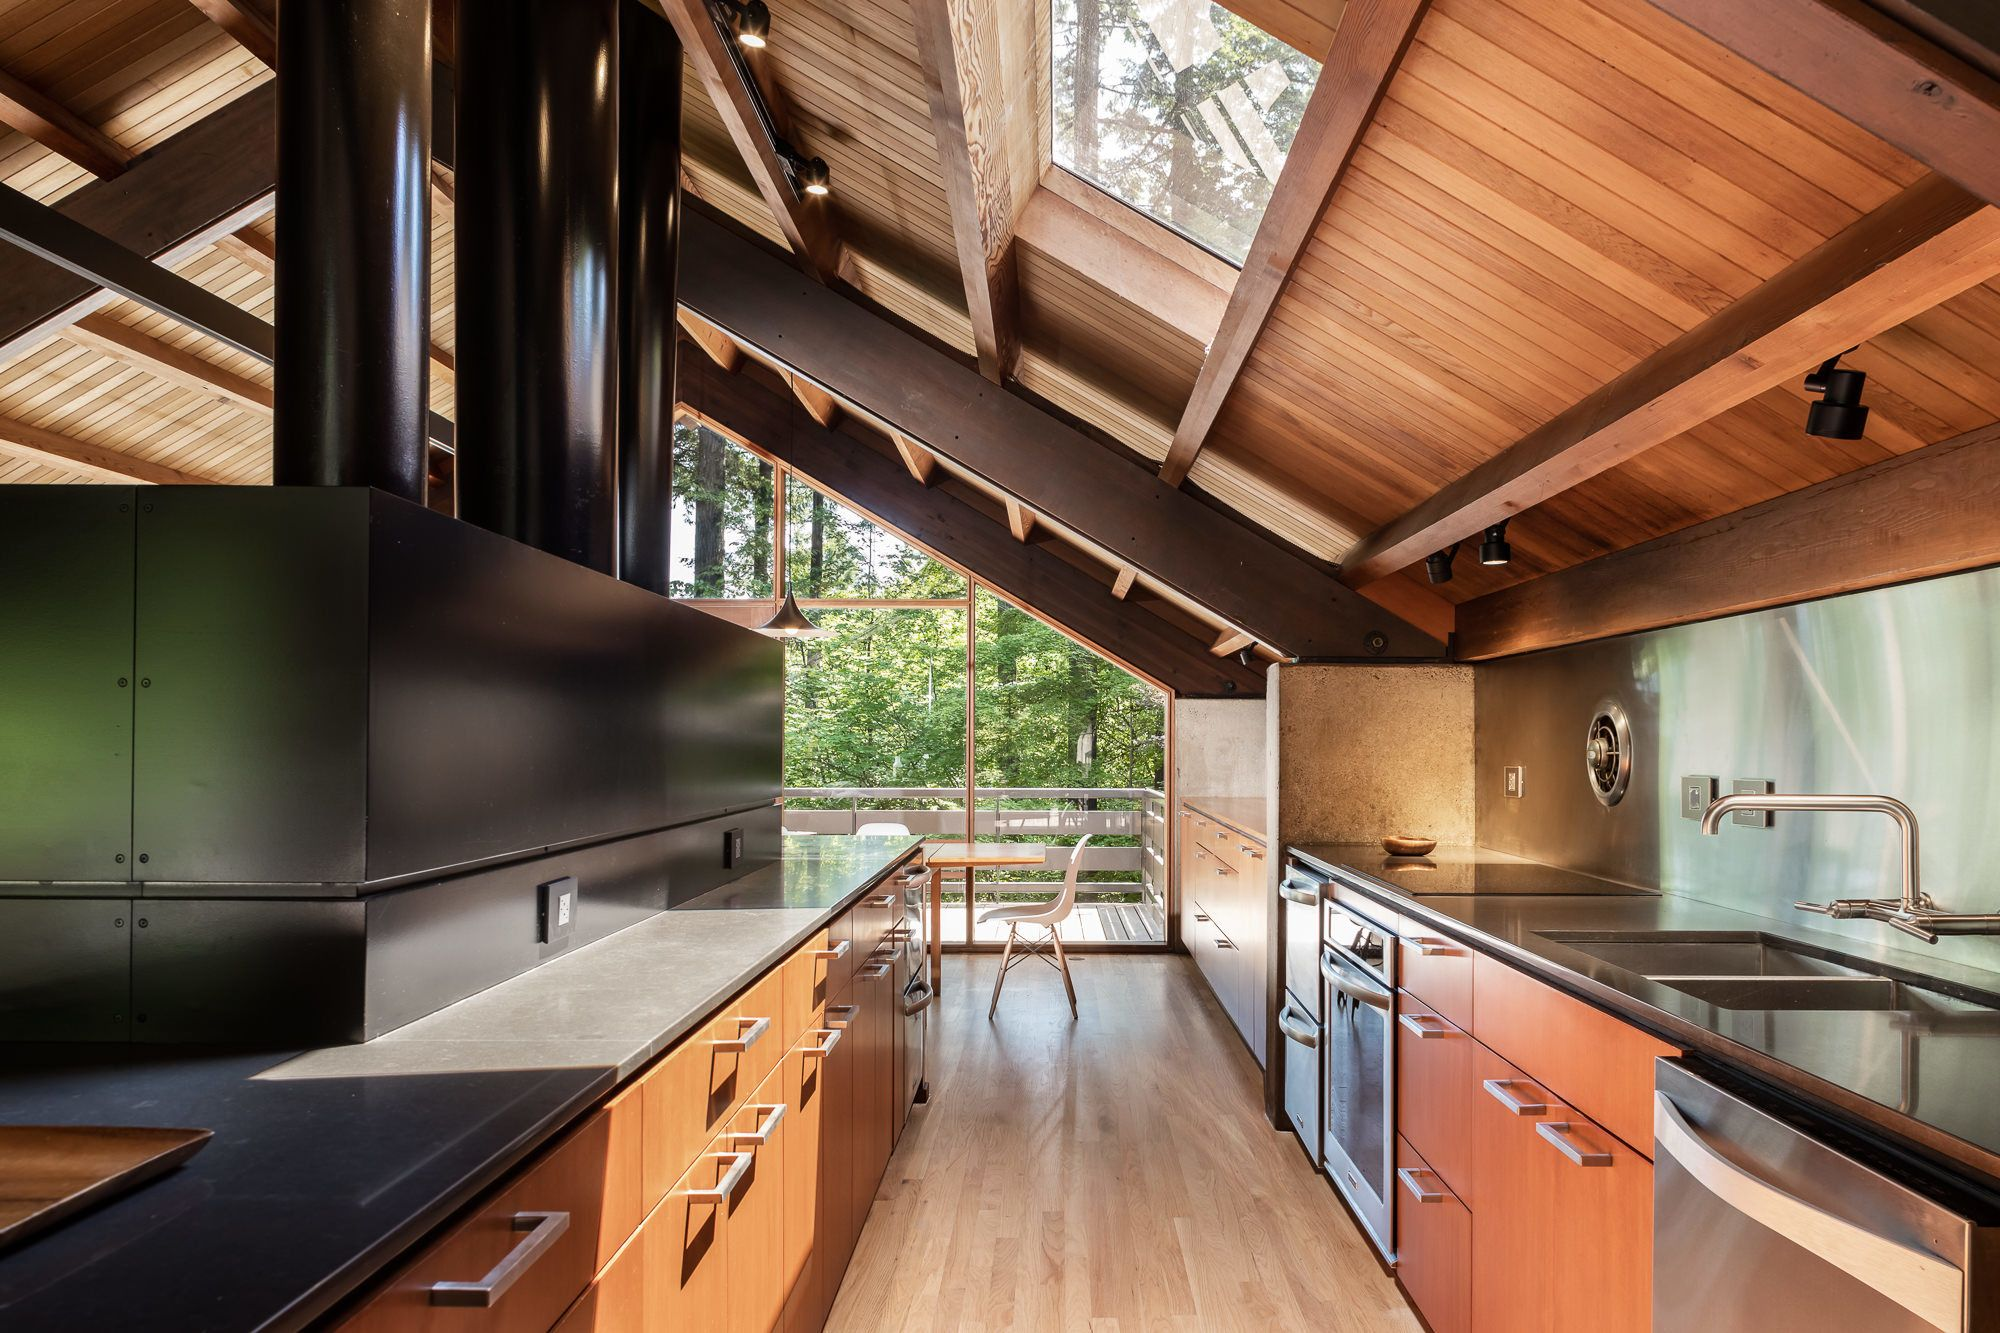 Photo 4 of 6 in A Portland Midcentury Home Shines After an